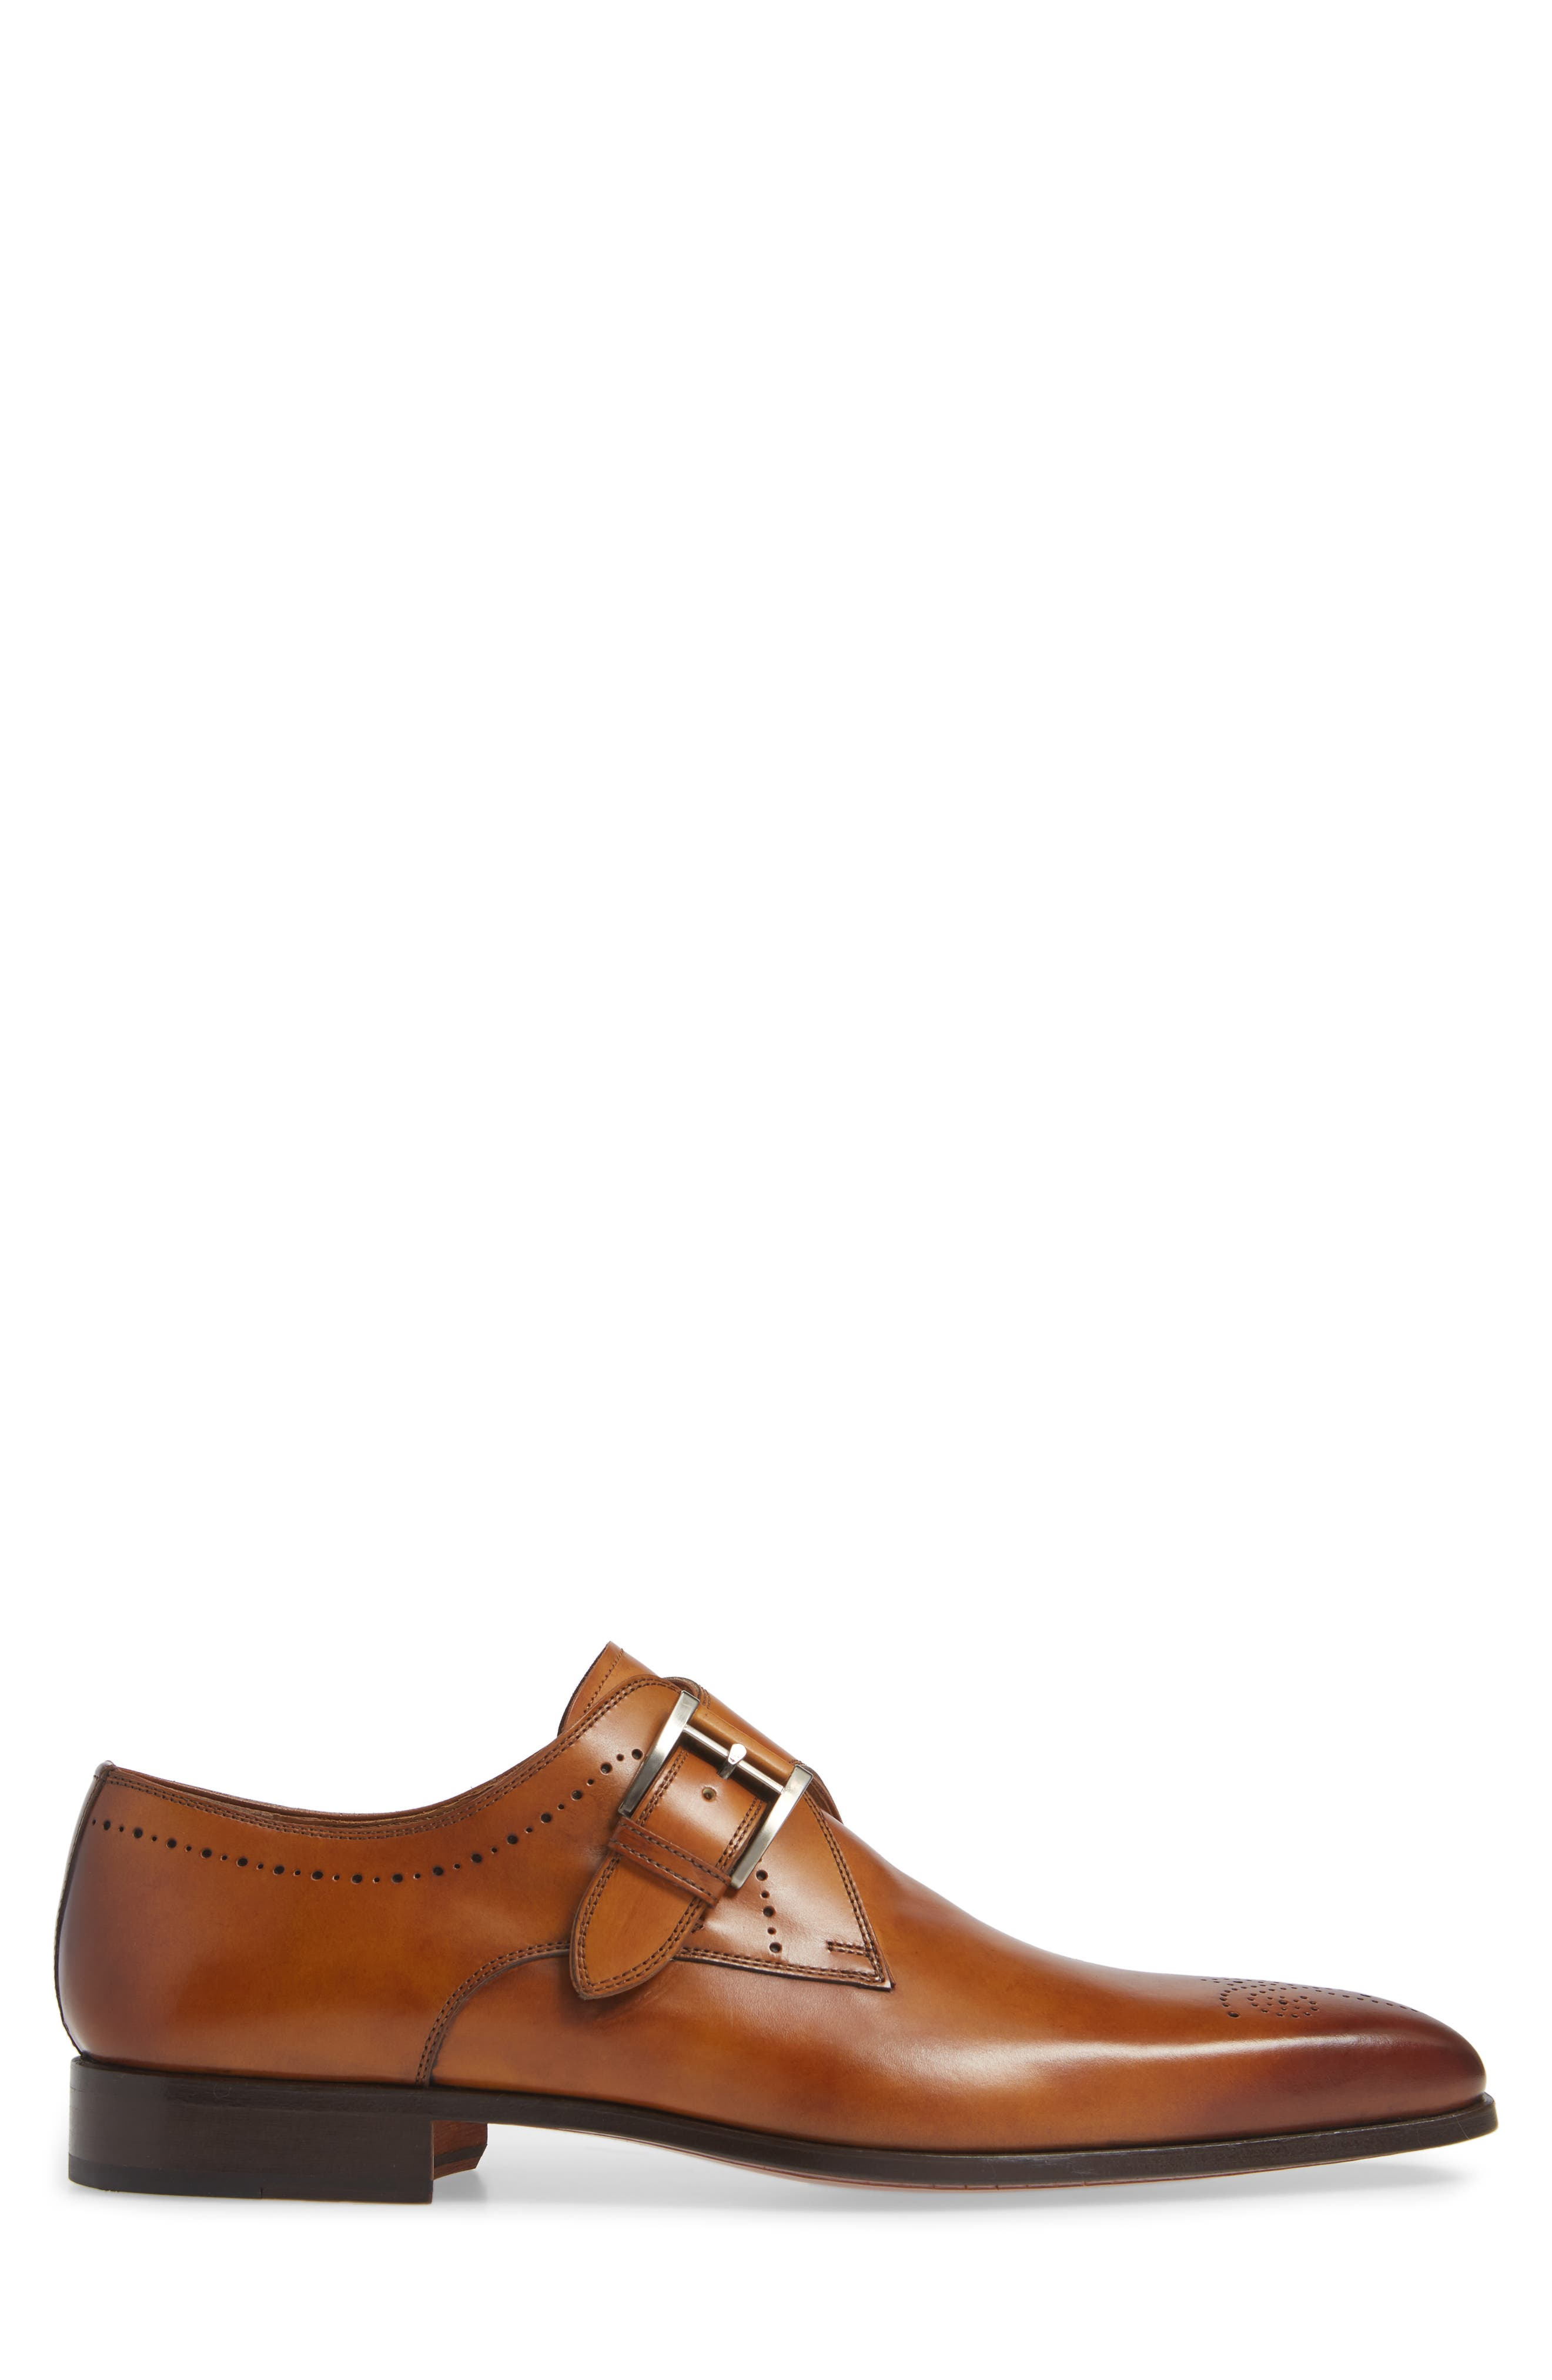 Geruasi Monk Strap Shoe,                             Alternate thumbnail 3, color,                             230